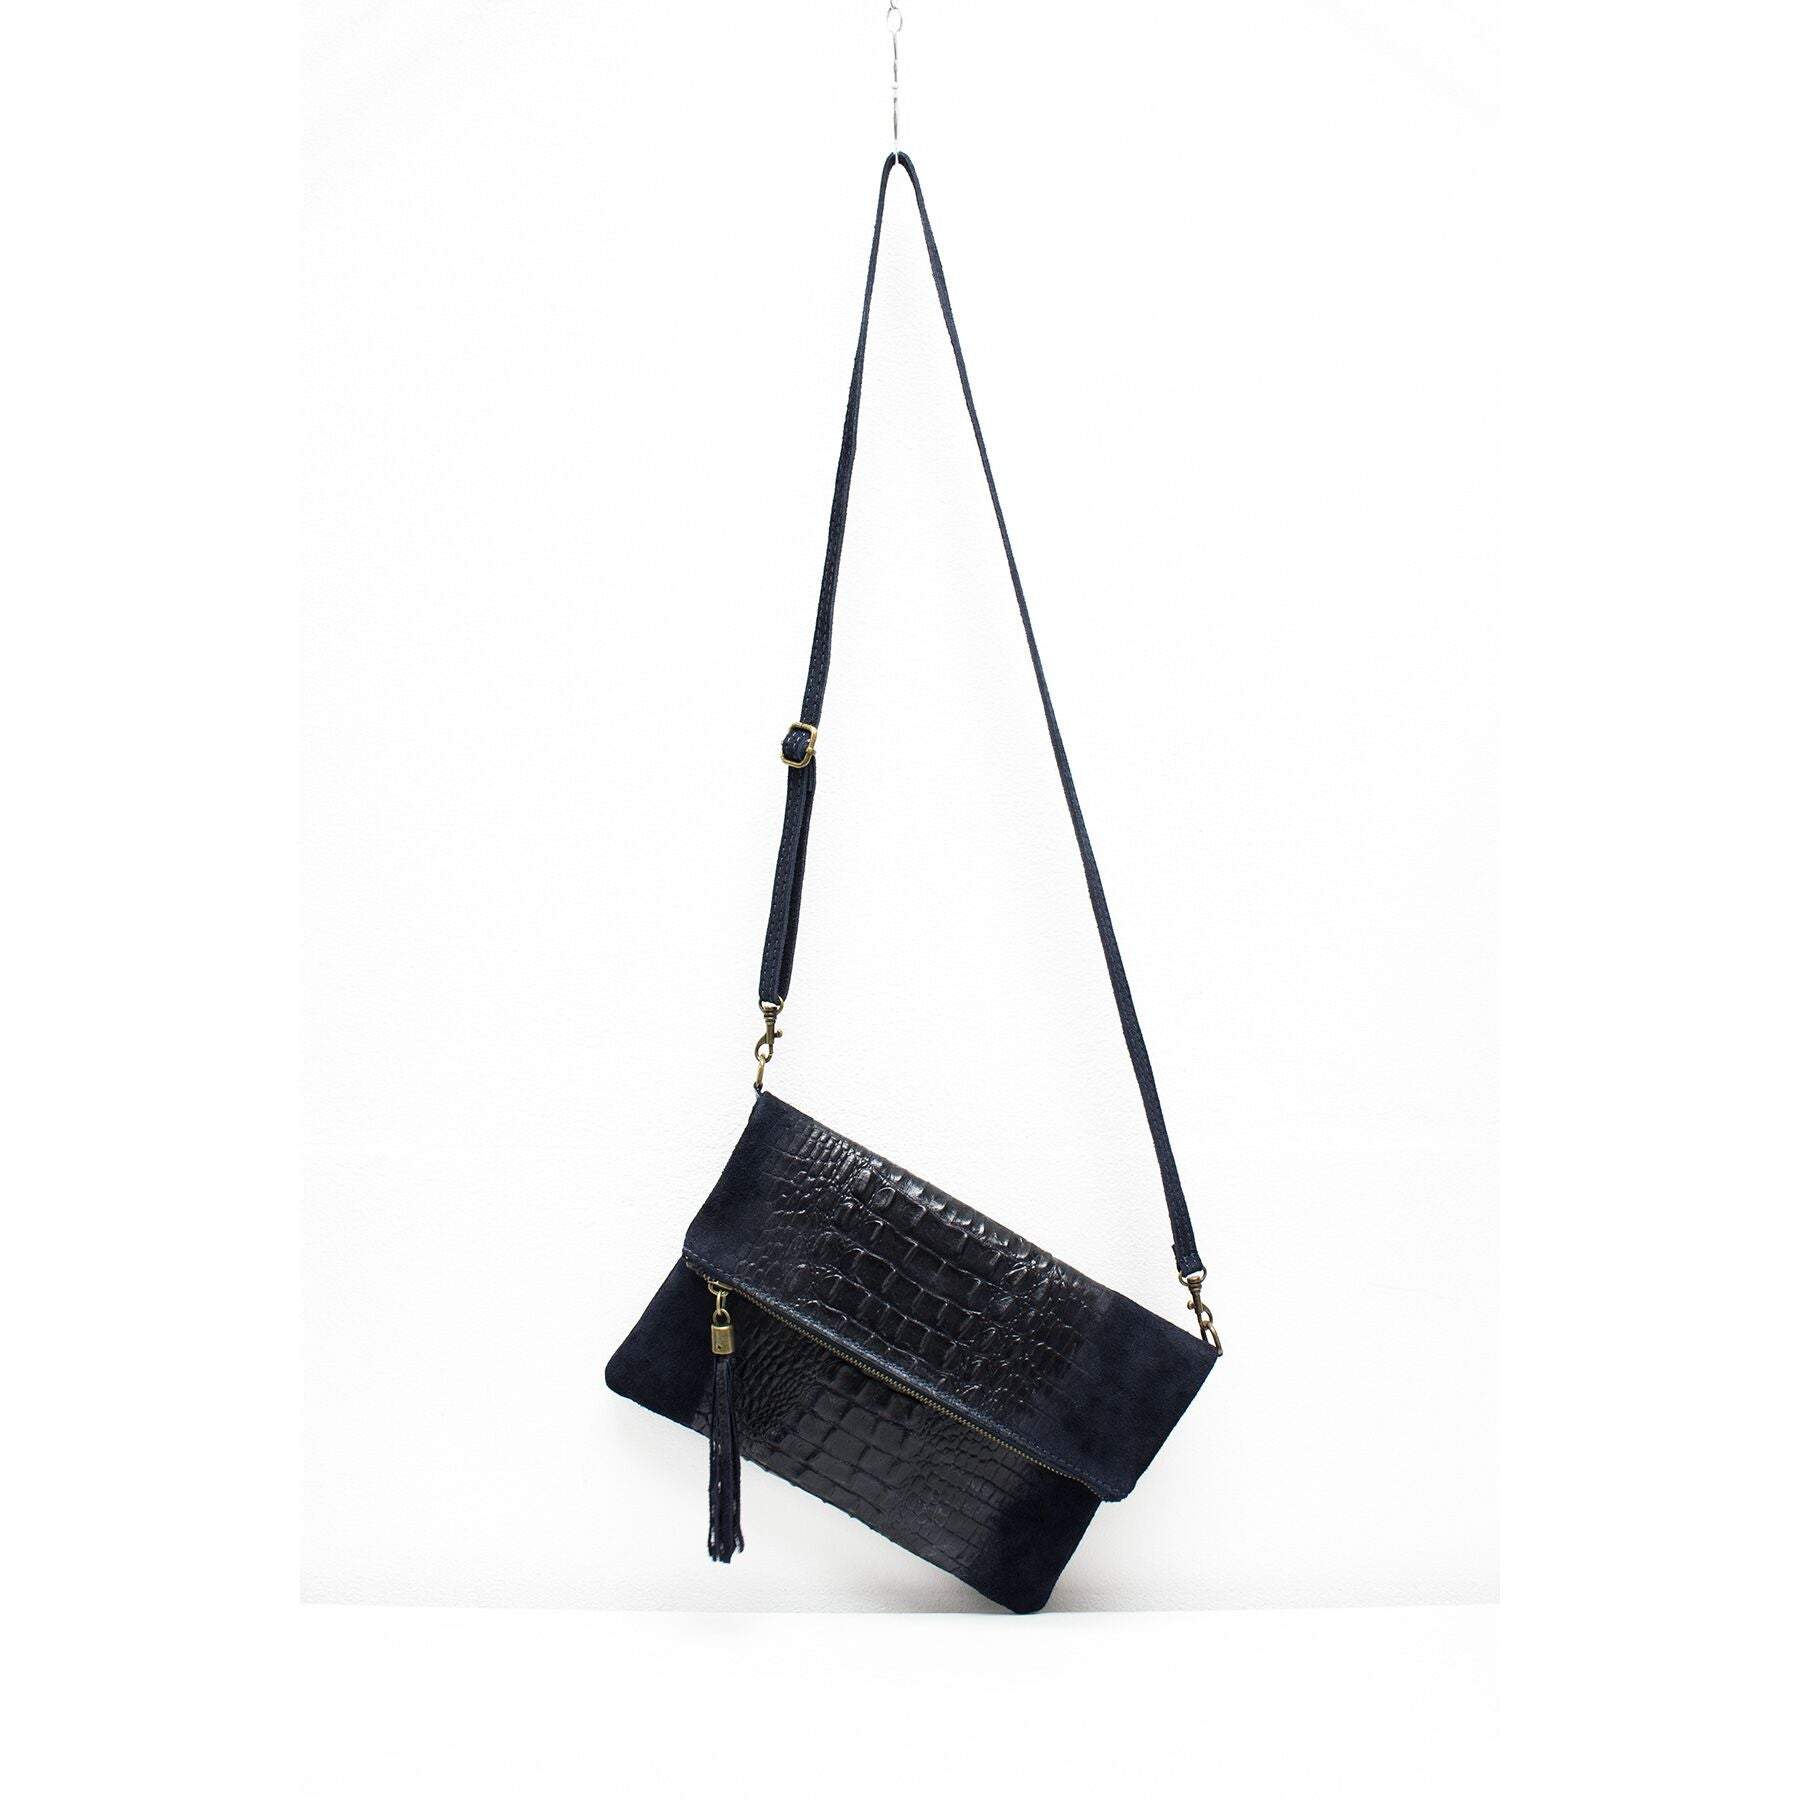 Navy suede and leather croc print fold over bag with long shoulder strap and tassel